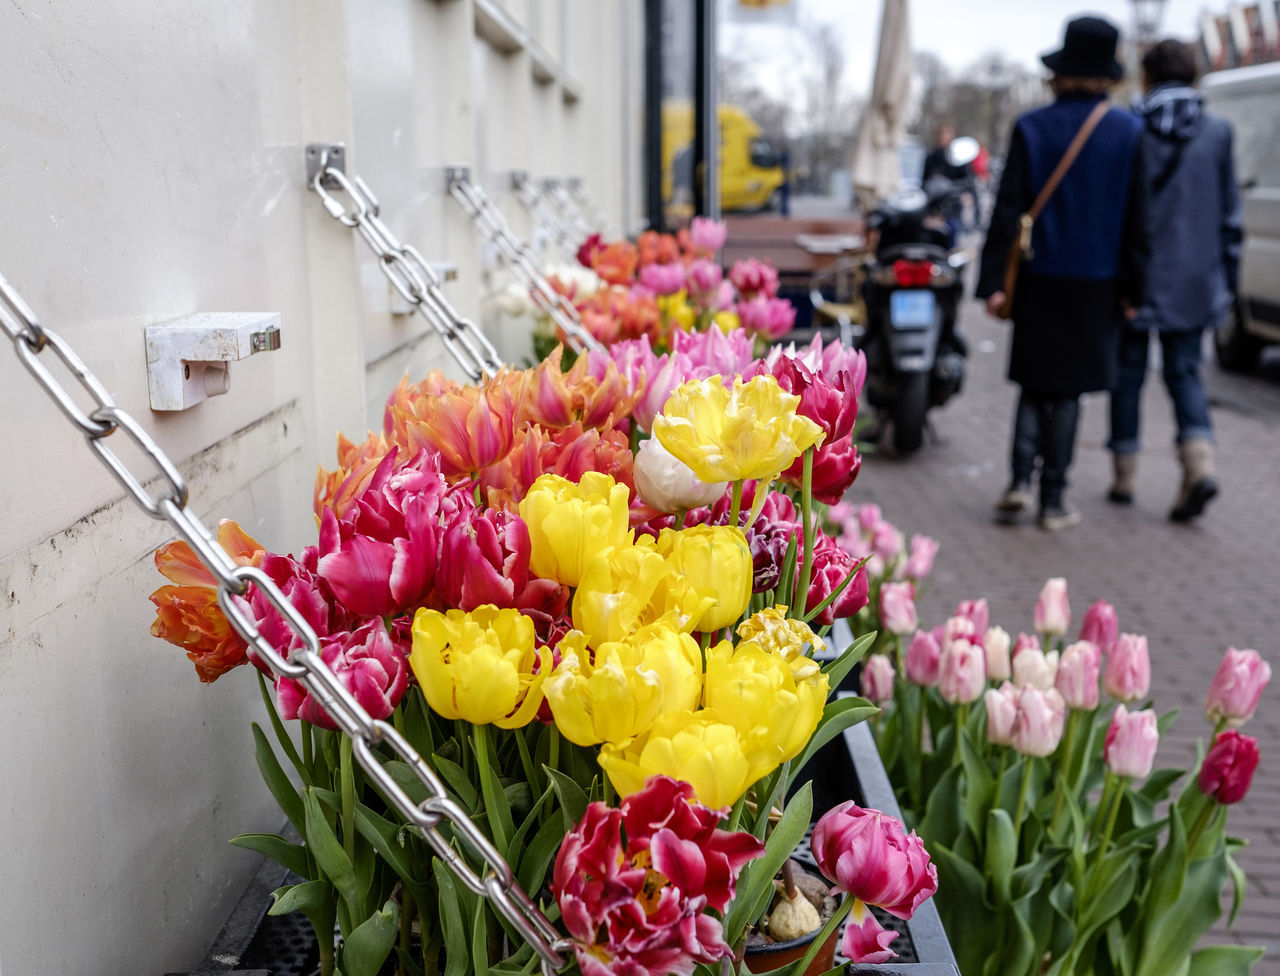 Tulips blooming by street